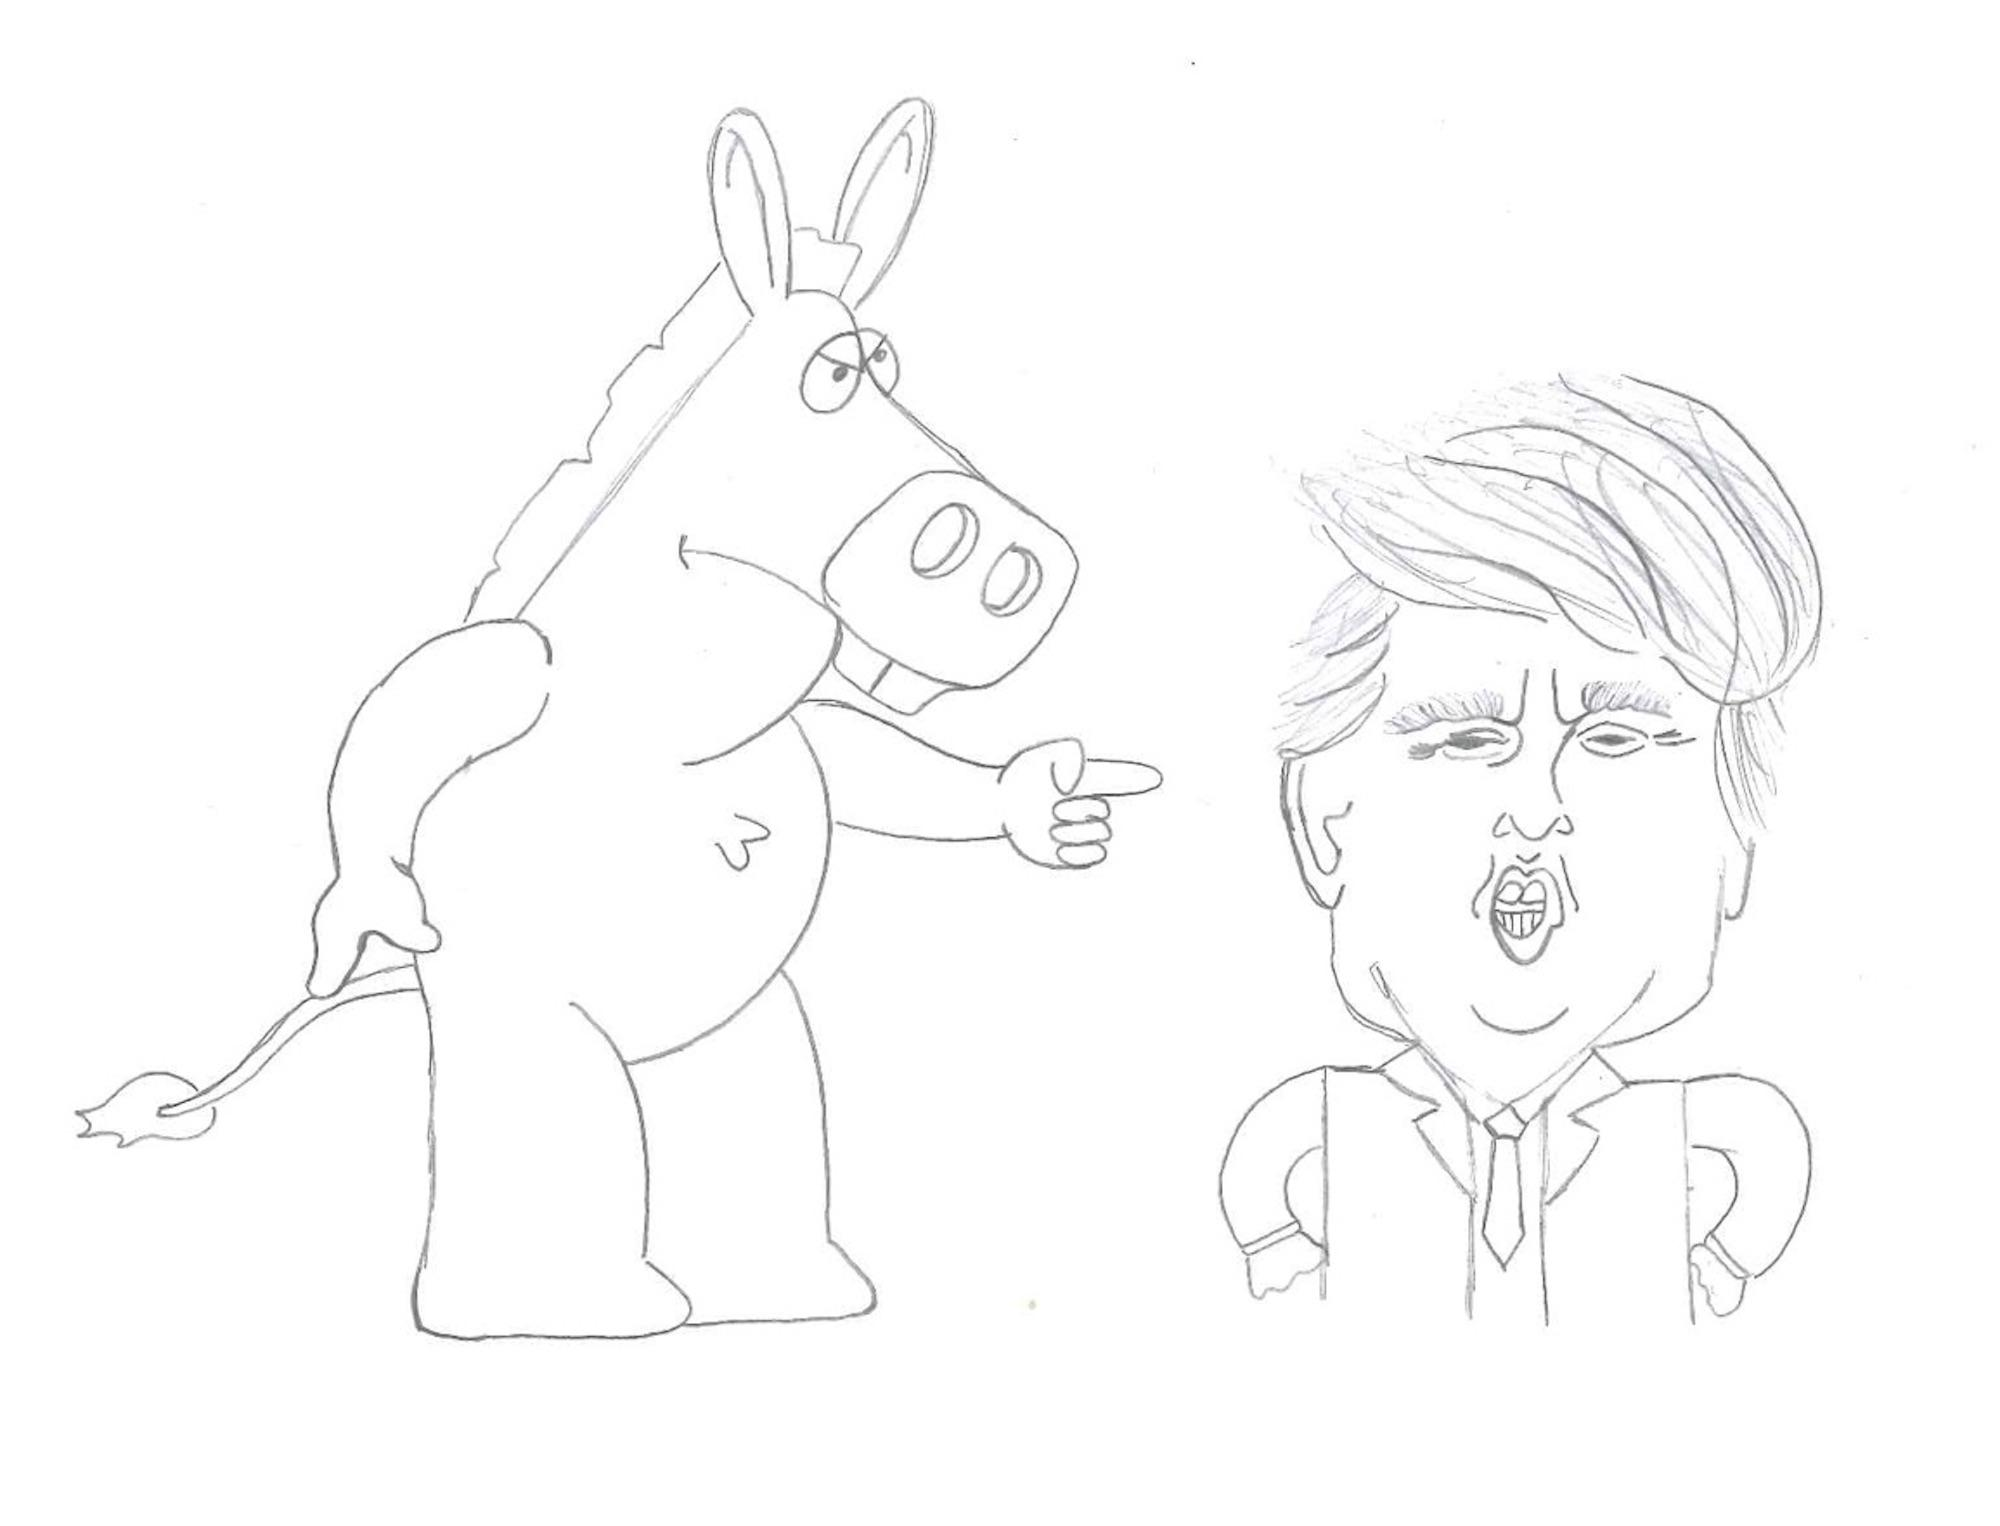 Though most Democrats dislike Trump, they offer different perspectives on why. Comic by Sophia Wilson.